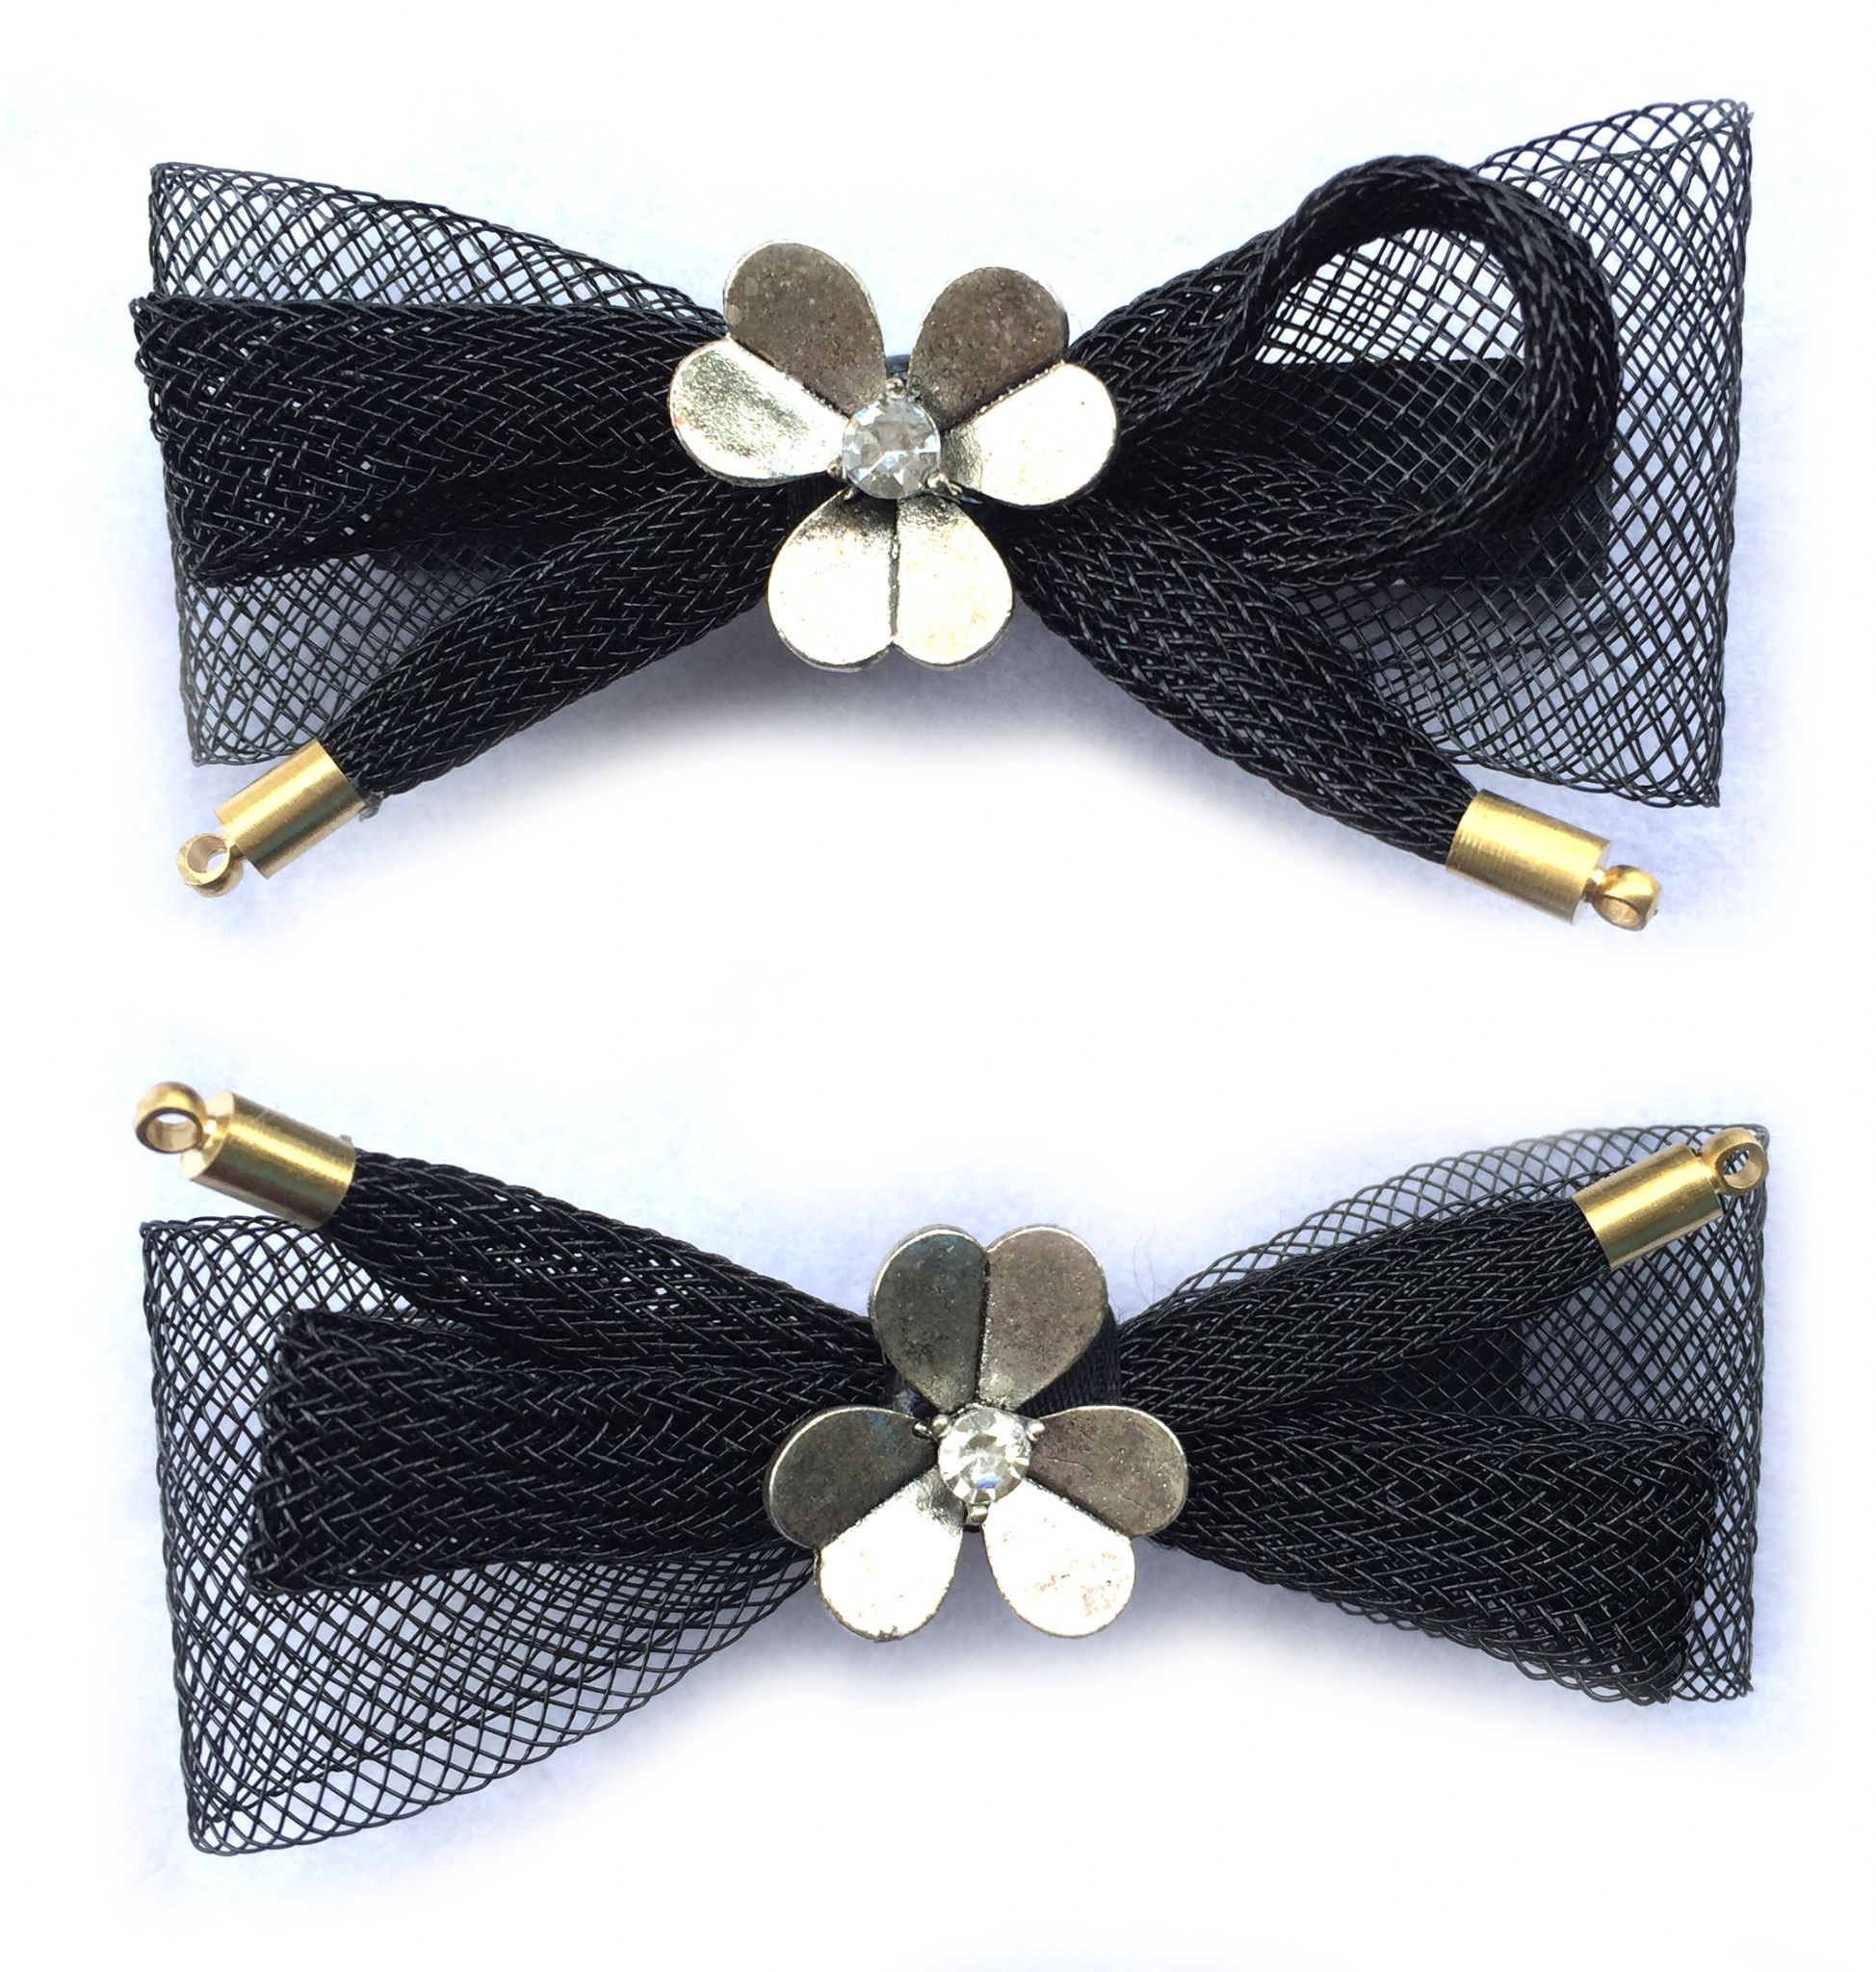 http://www.conmigolondon.co.uk/ekmps/shops/conmigo/images/1.-al0060-eye-catching-black-bow-with-silver-metal-flower-hair-slids-2-pieces-15525-p.jpg